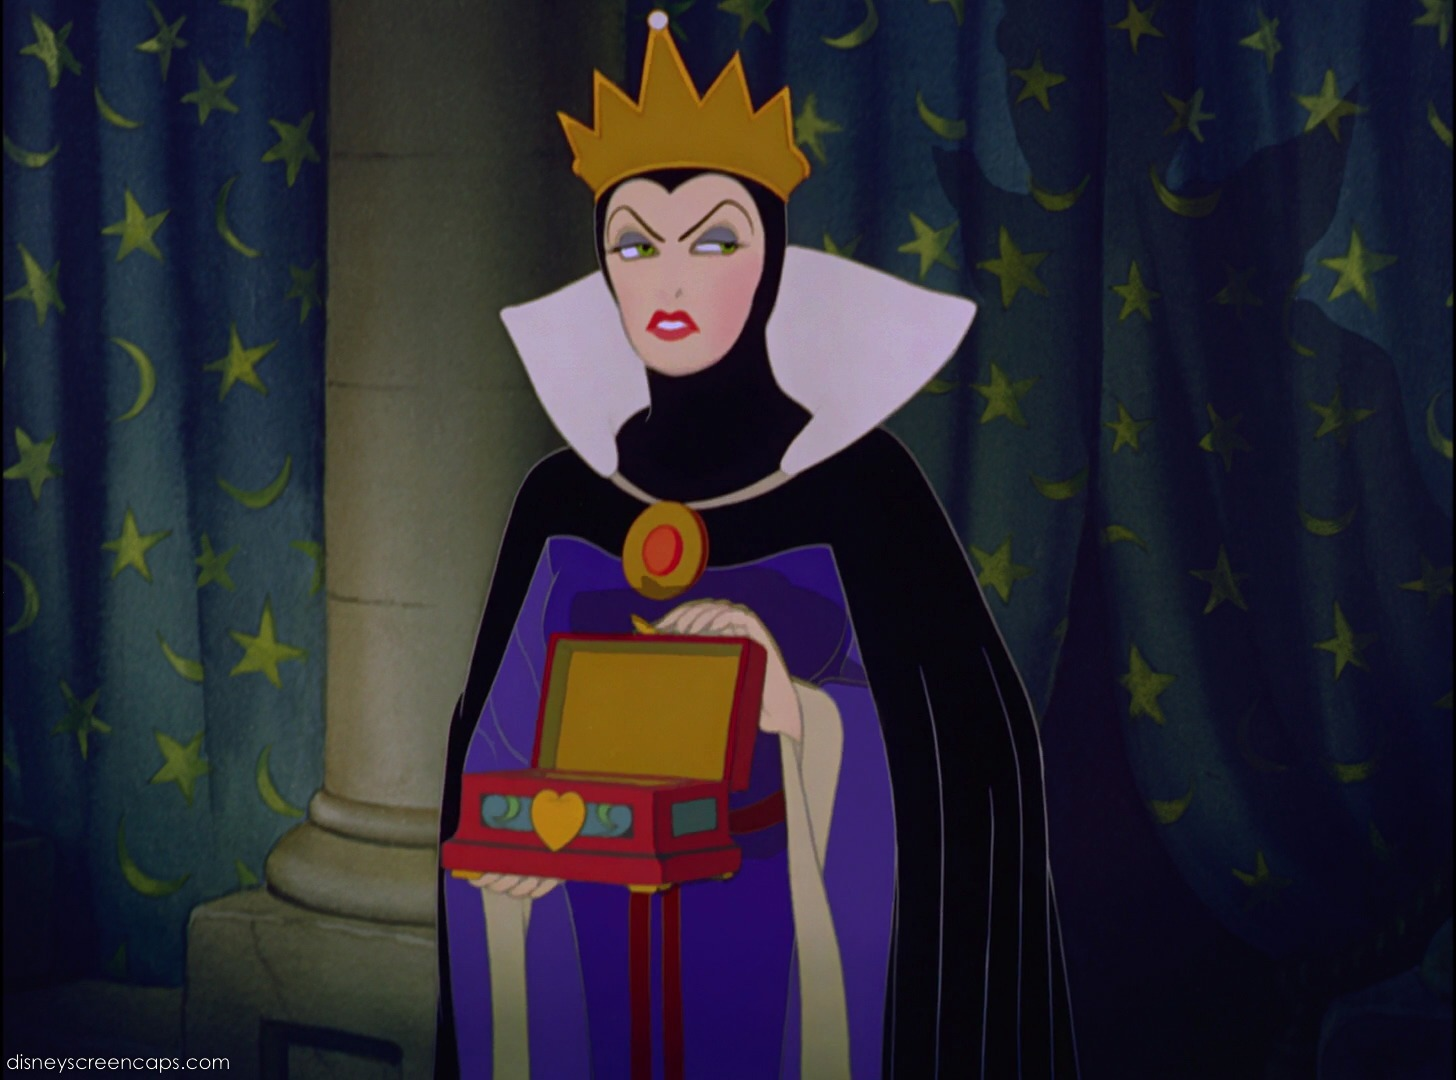 Wolf S Bane The Evil Queen Villains Wiki Fandom Powered By Wikia